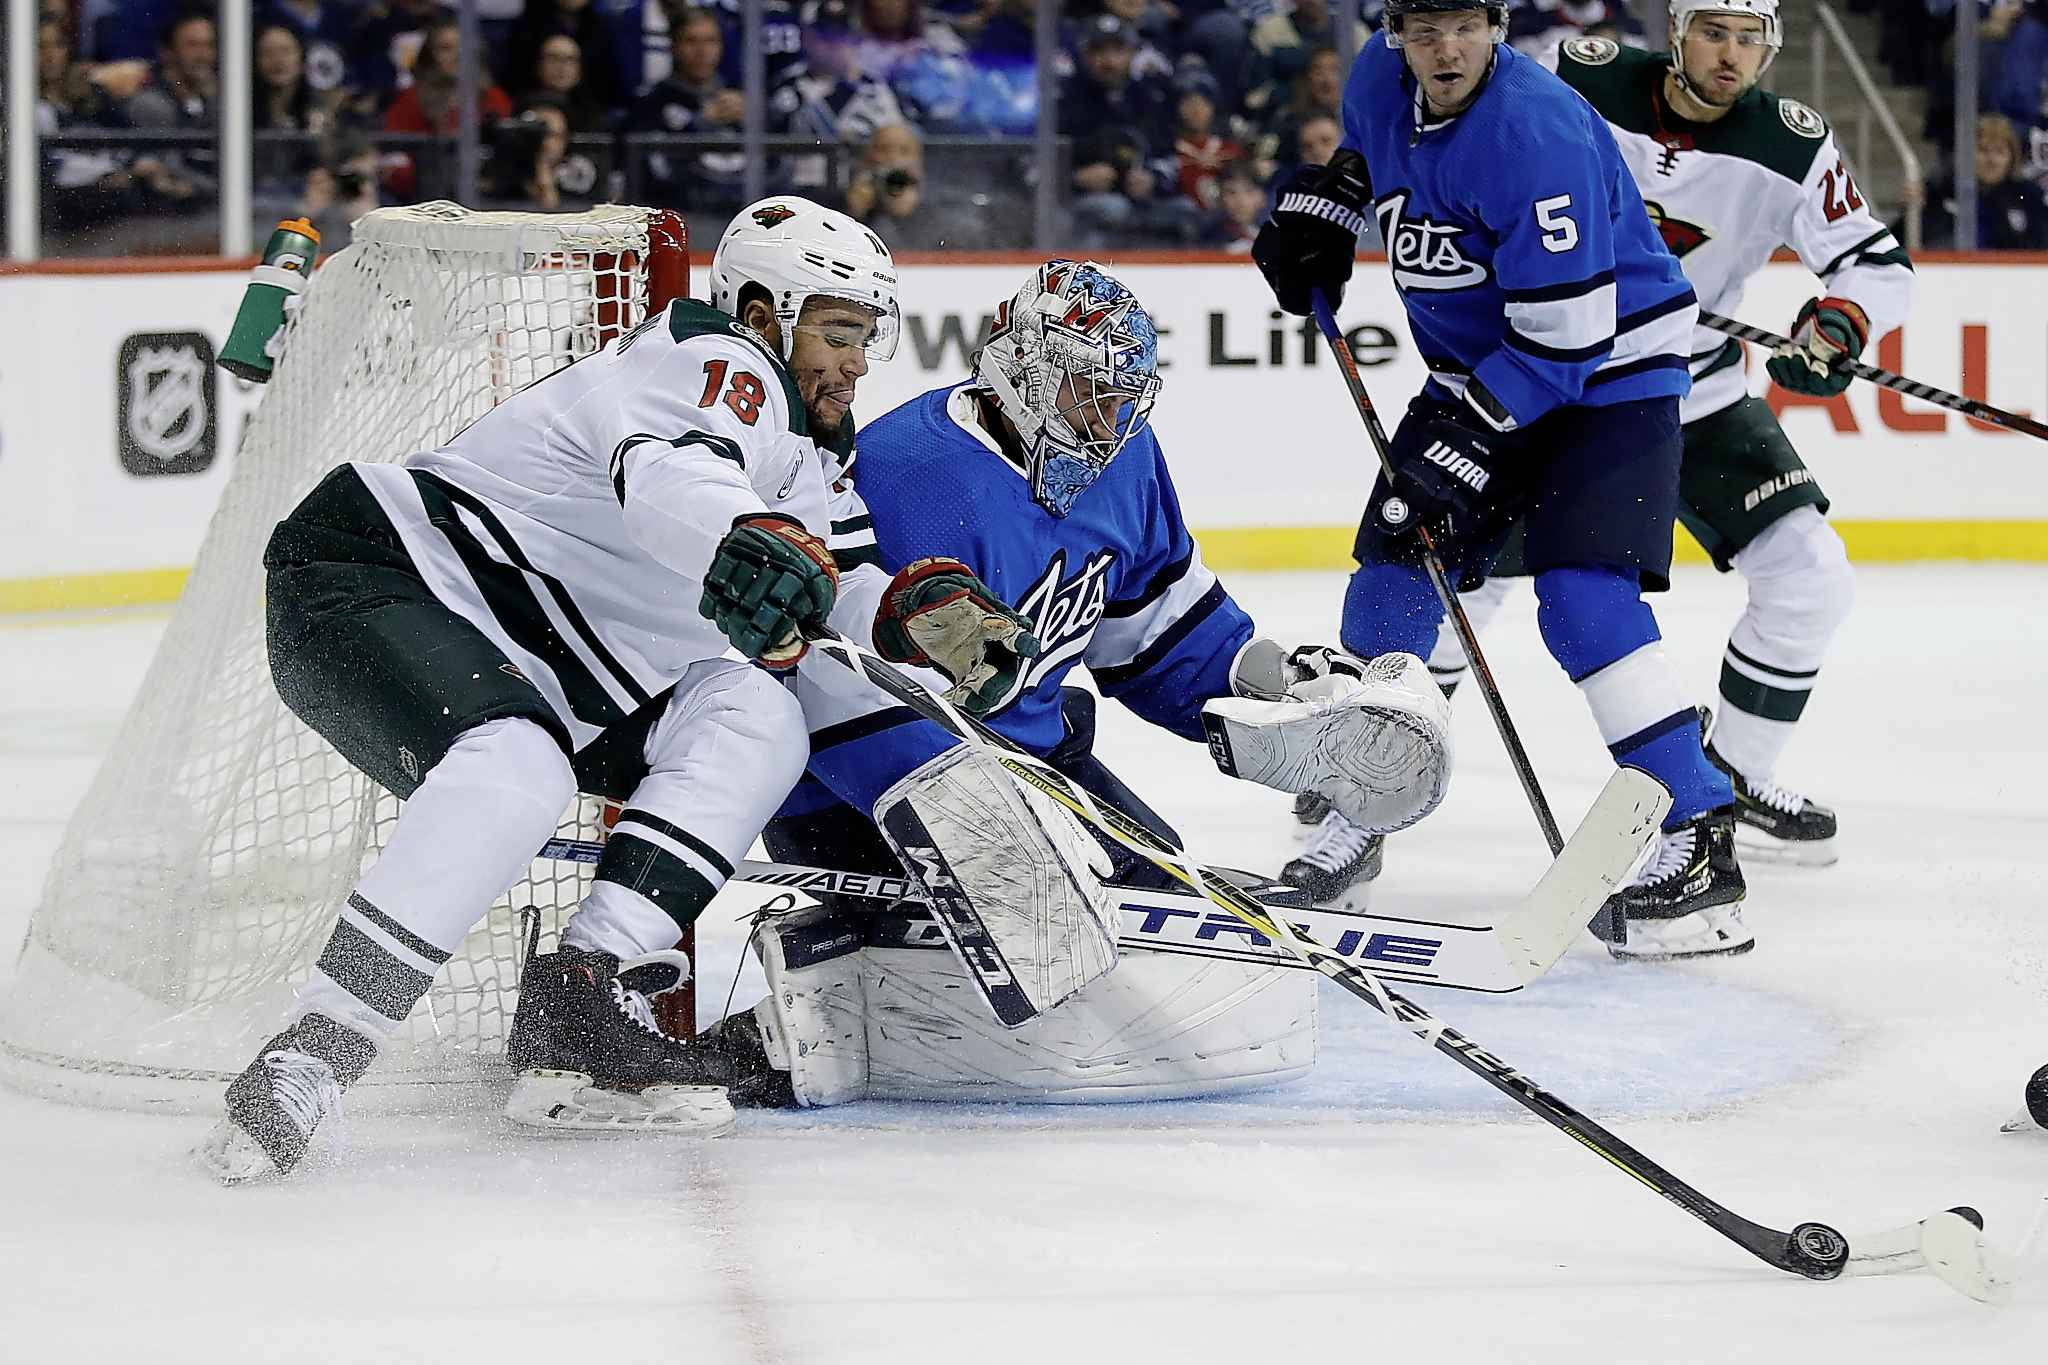 JOHN WOODS / THE CANADIAN PRESS</p><p>Minnesota Wild's Jordan Greenway (18) tries to recover the rebound off his shot on Winnipeg Jets goaltender Connor Hellebuyck (37) during first period NHL action in Winnipeg on Saturday, December 29, 2018.</p>